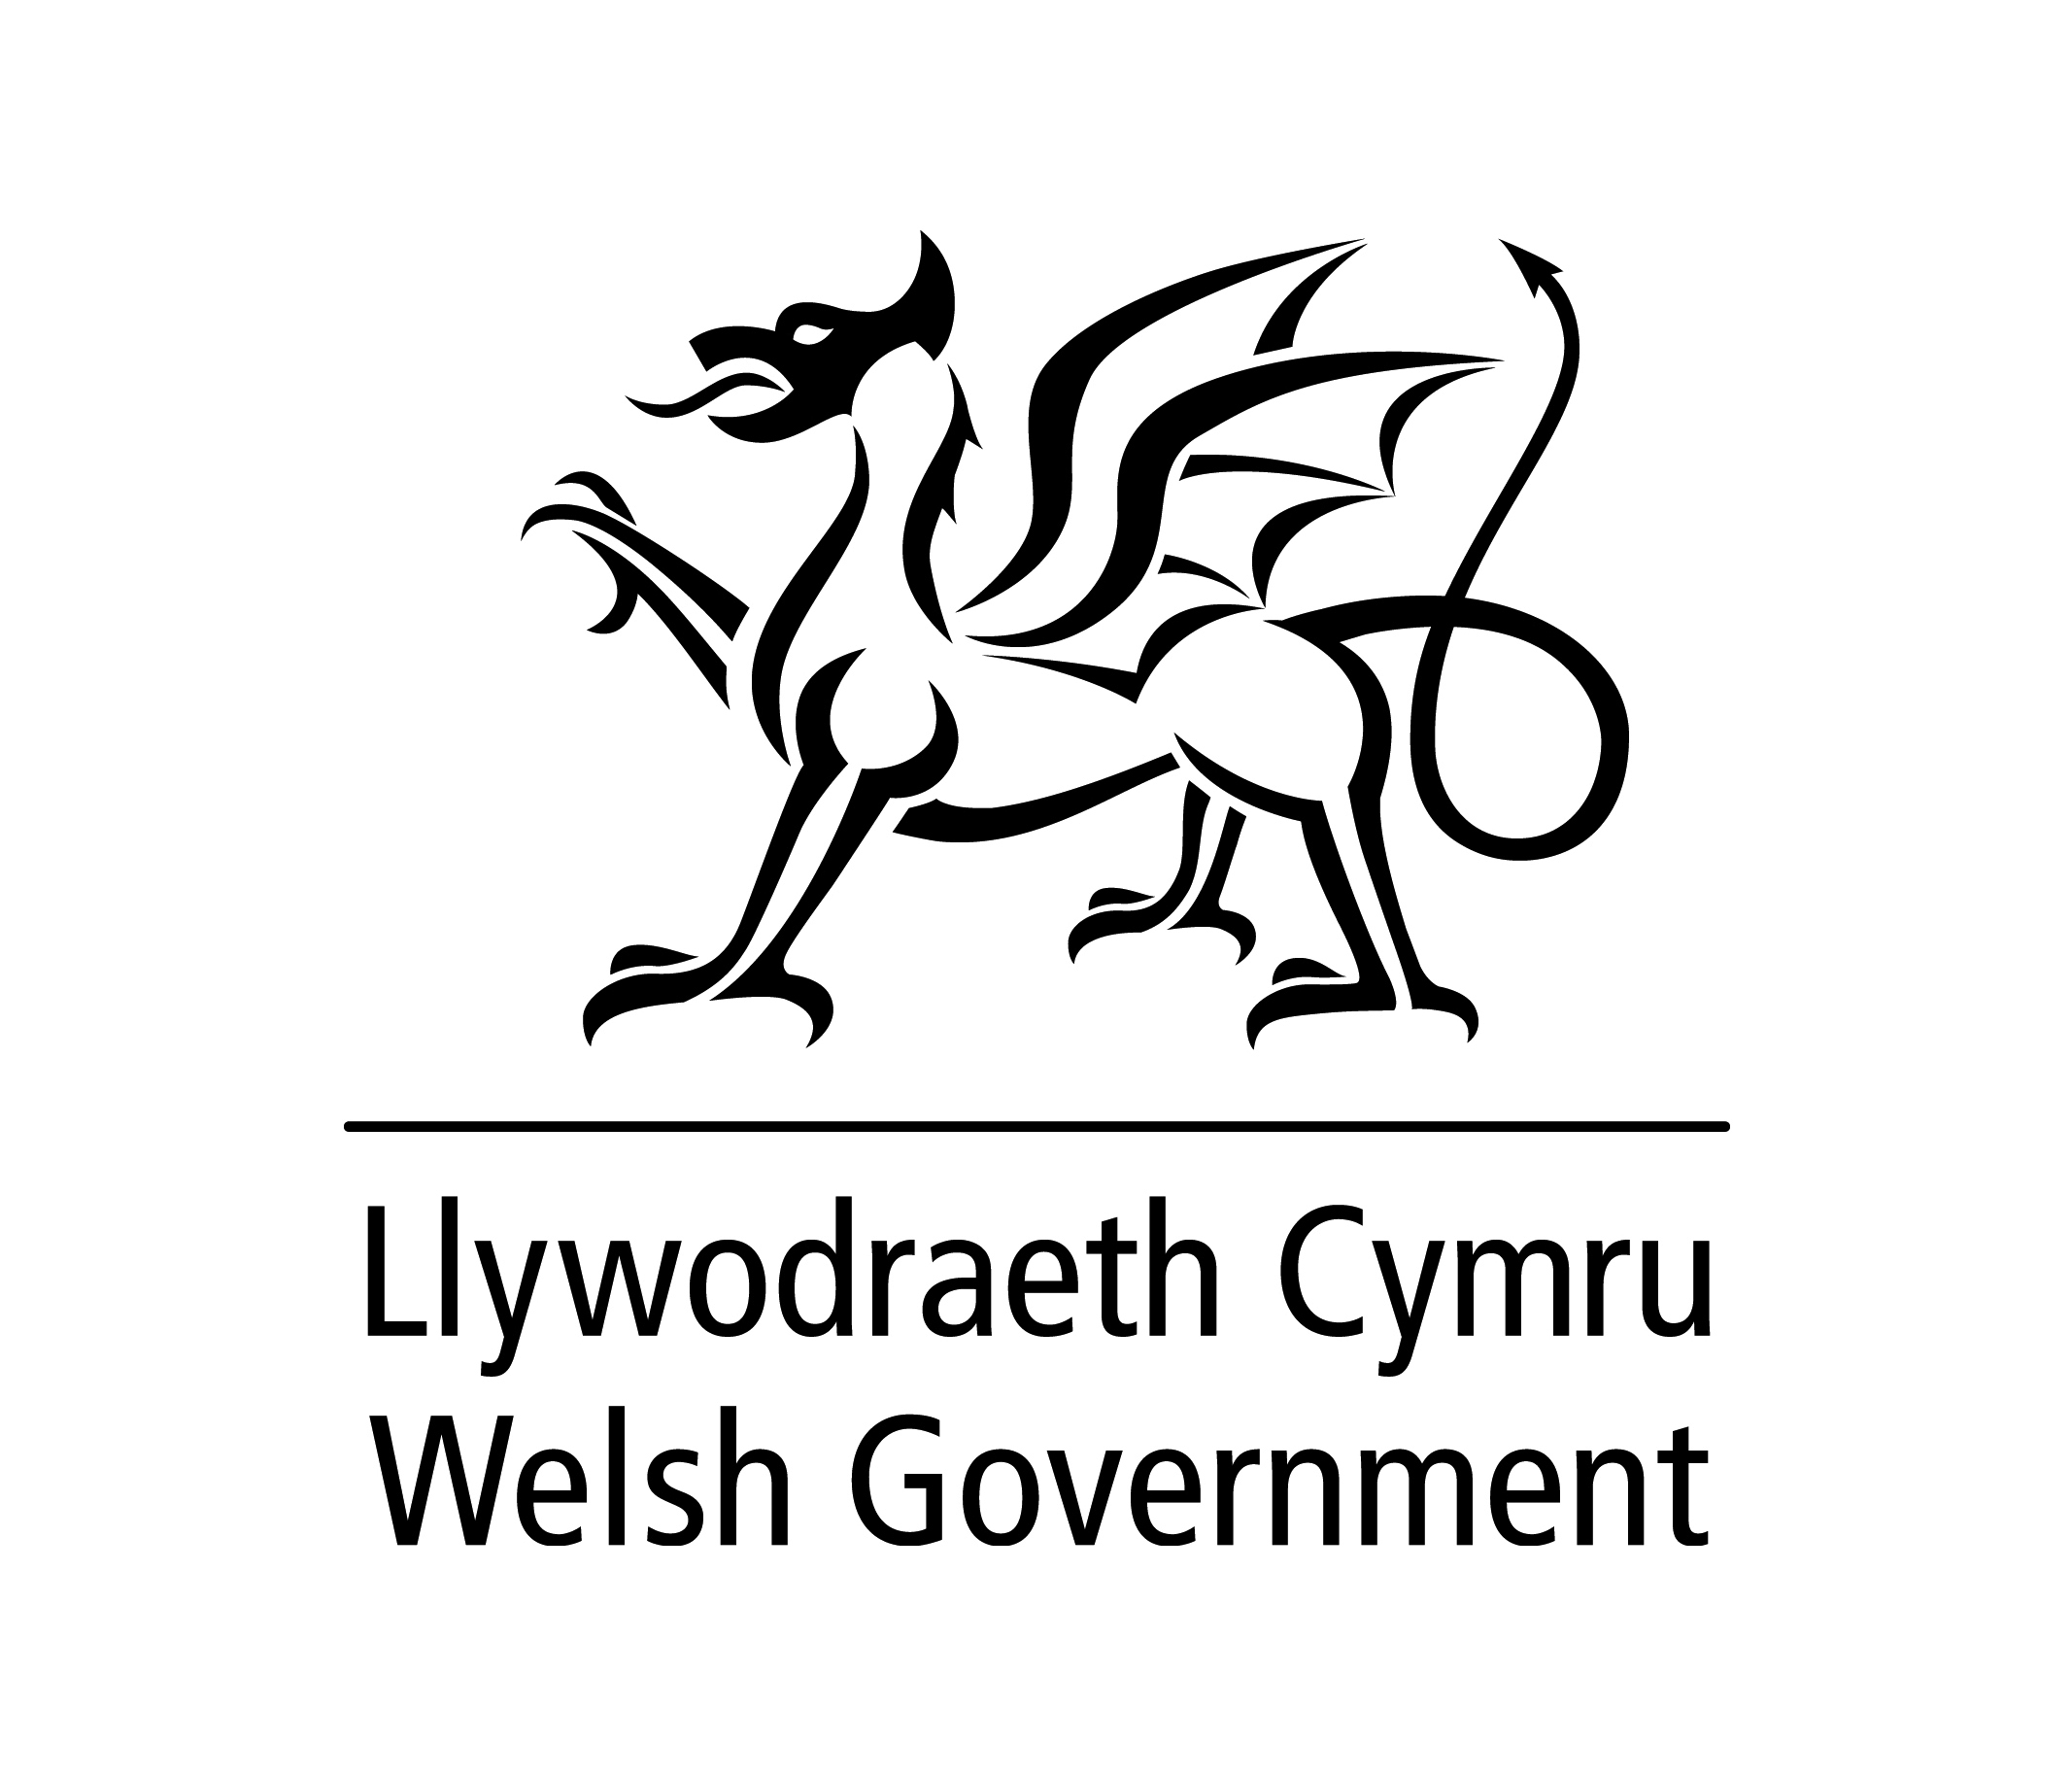 Welsh Government_K.jpg